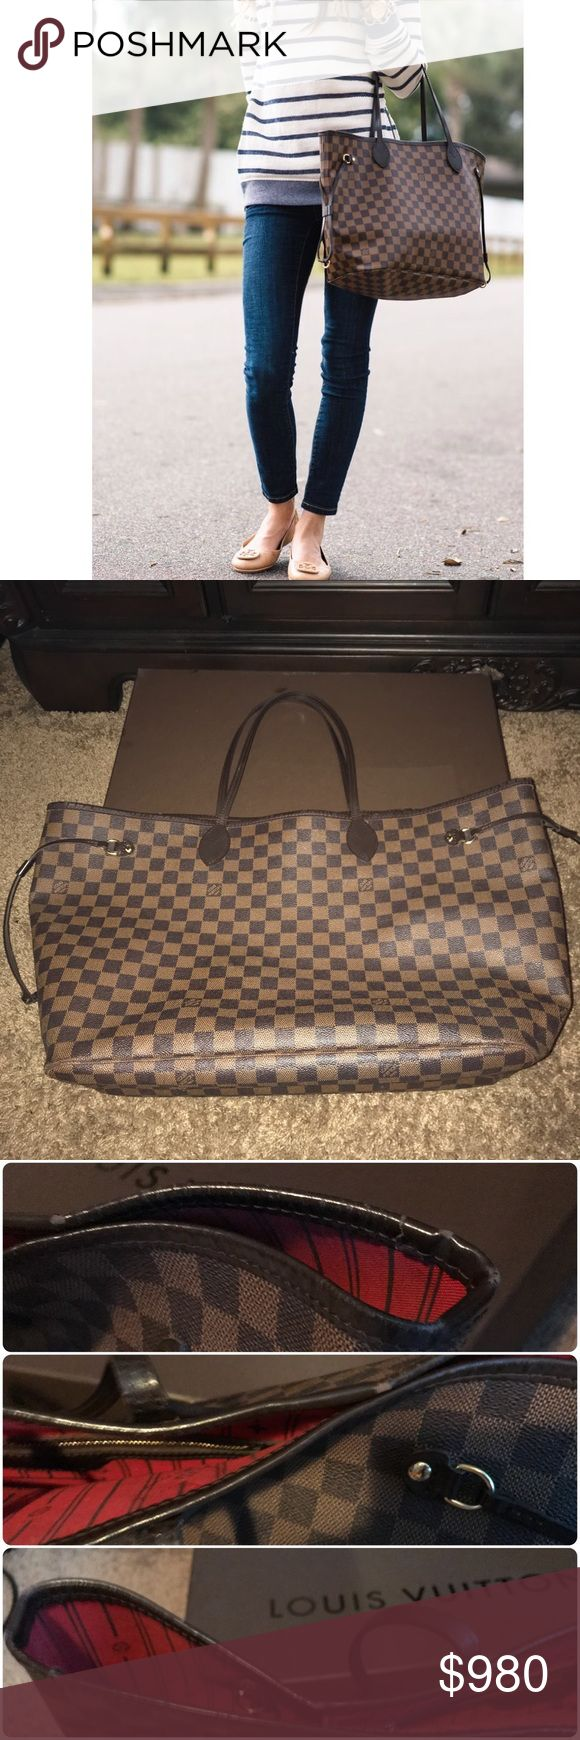 Authentic LV Damier Ebene Neverfull GM Canvas Tote Authentic LV NEVERFULL GM Tote  Beautiful used condition! Pictures show wear.   Purchased at LV Neiman Marcus Galleria Houston, TX 15.7 x 13.0 x 7.9 inches (L x H x W)   Poshmark will authenticate this bag at no charge to you. - Date code photo picture attached  - NO receipt - Does NOT include pouch - Will come with dust bag - Will come with LV box  - Interior with Louis Vuitton archive details - Textile-lined inside pocket - Natural cowhide…